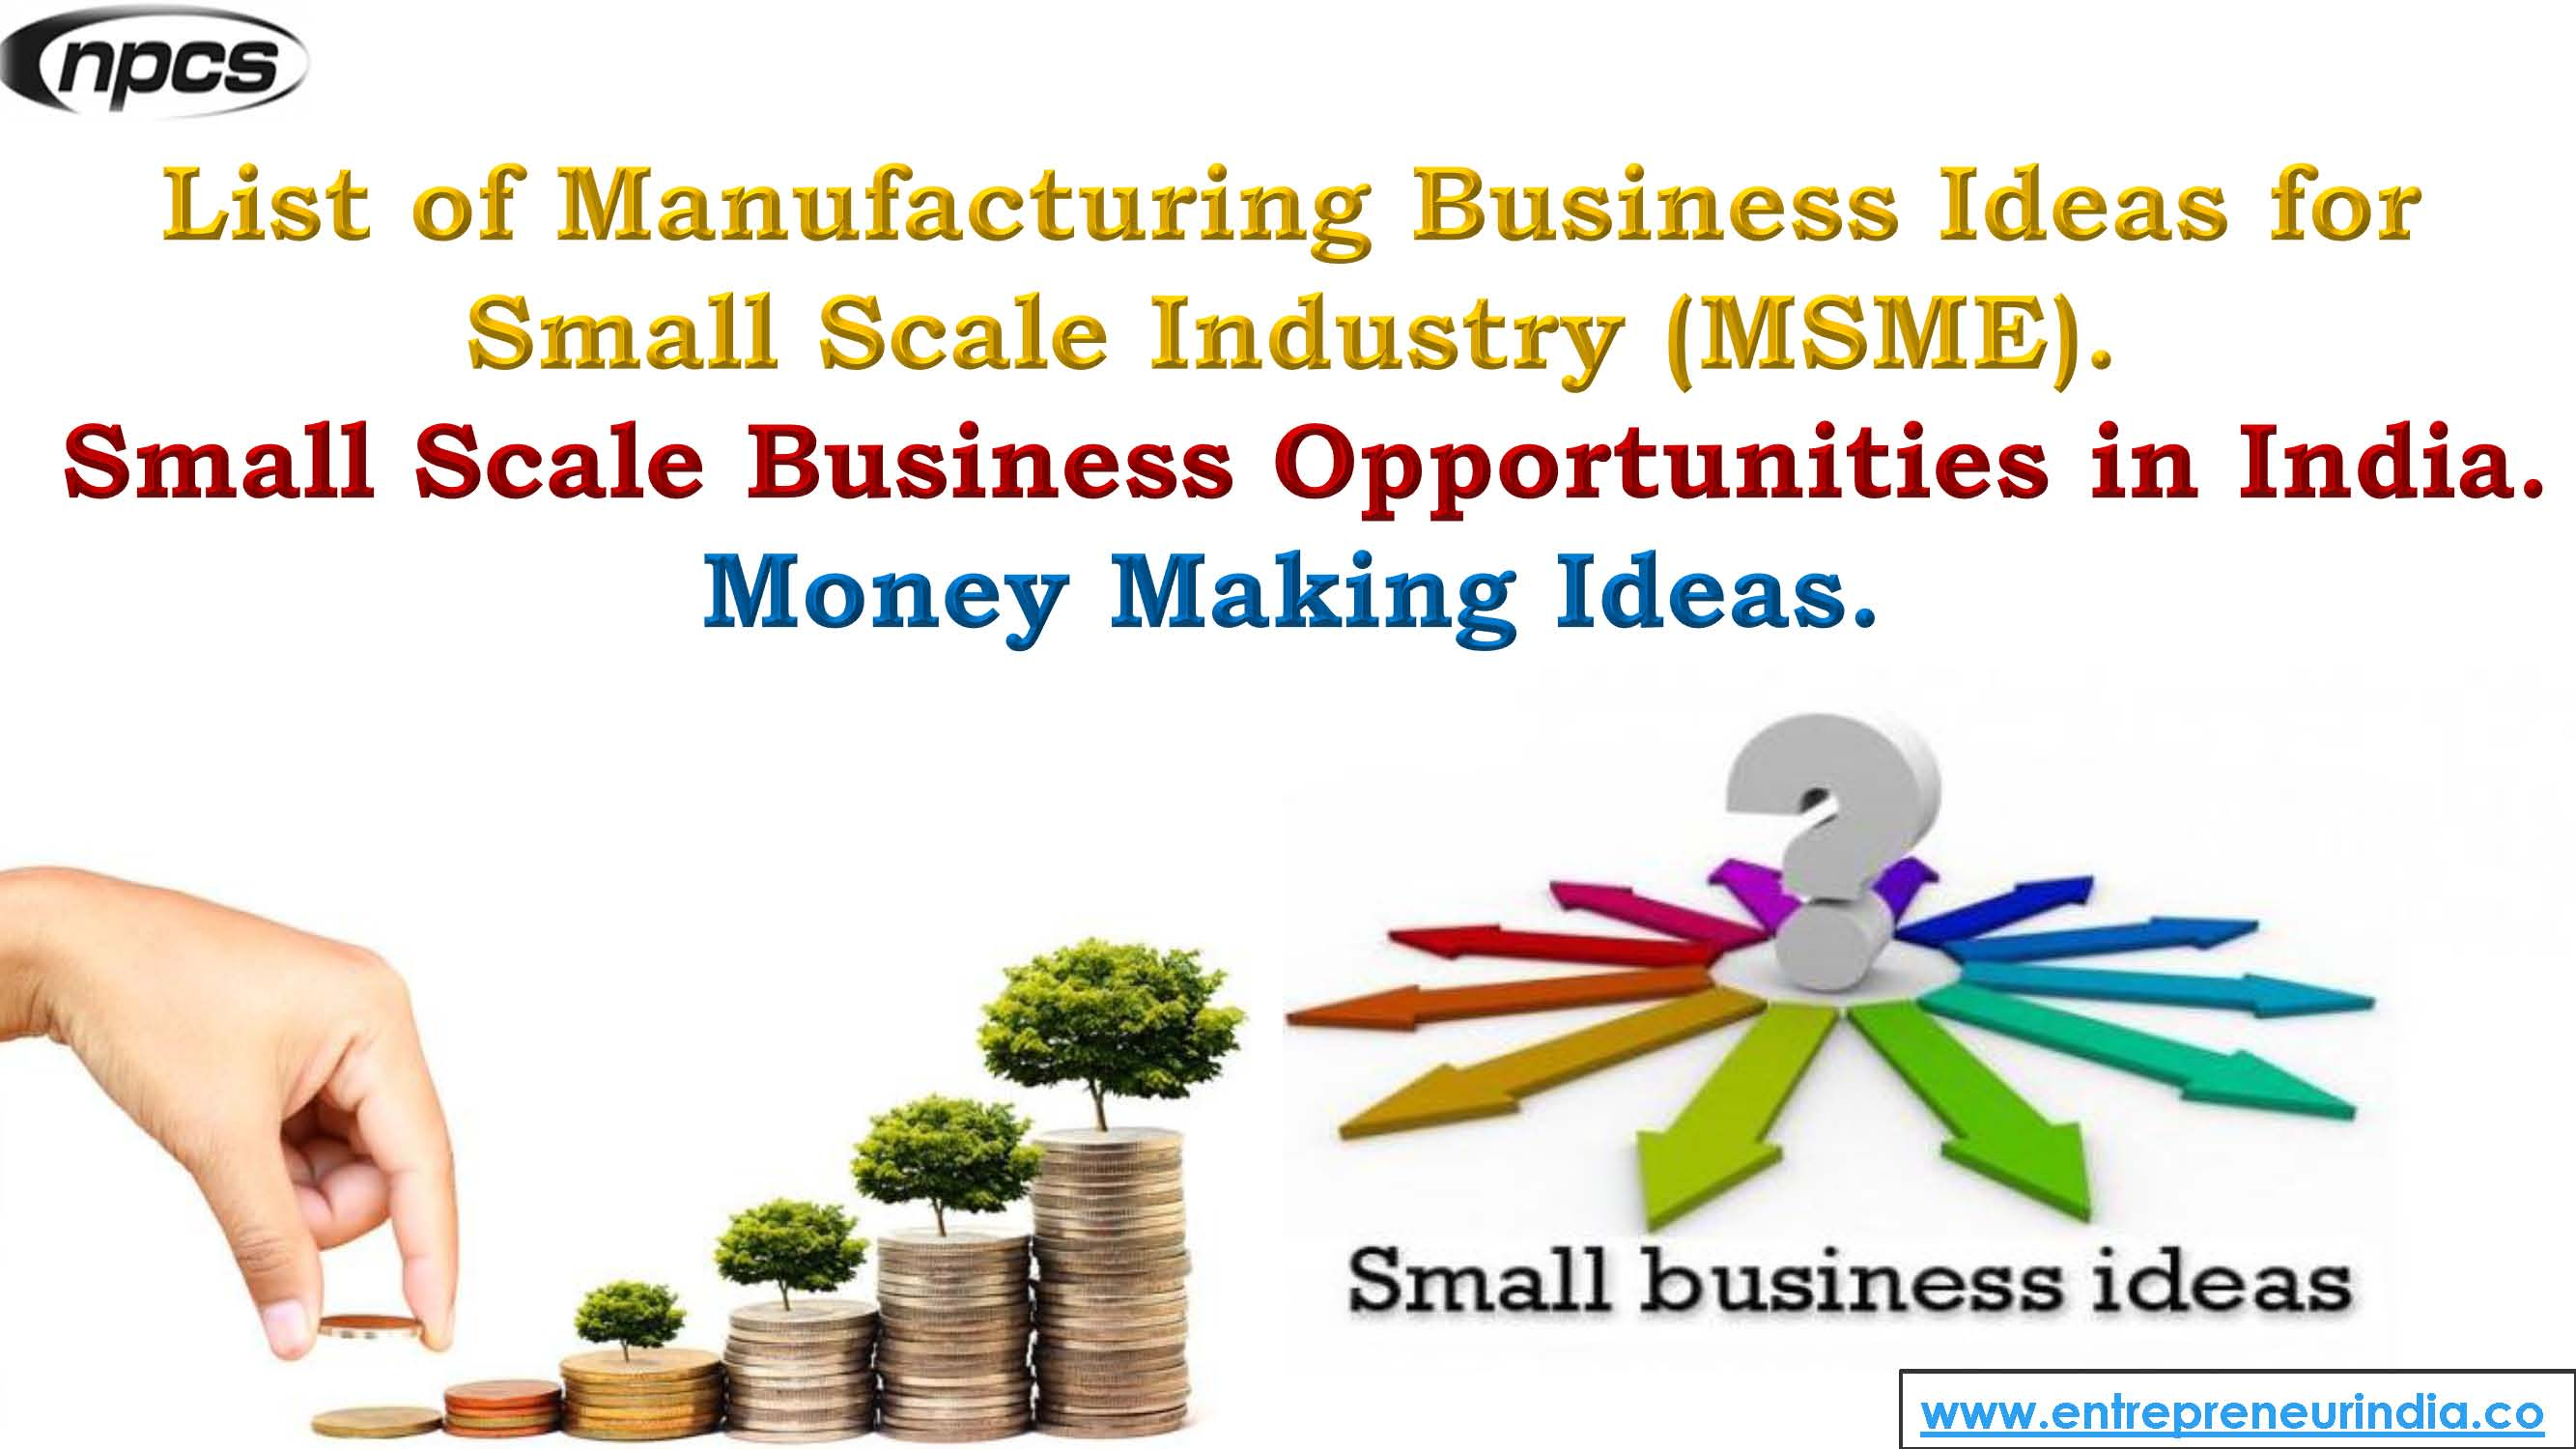 small scale industries Small scale industries (ssi) play a pivotal role in the employment generation and export promotion strategies, among others, of industrialization in many develop as well as developing countries including india.